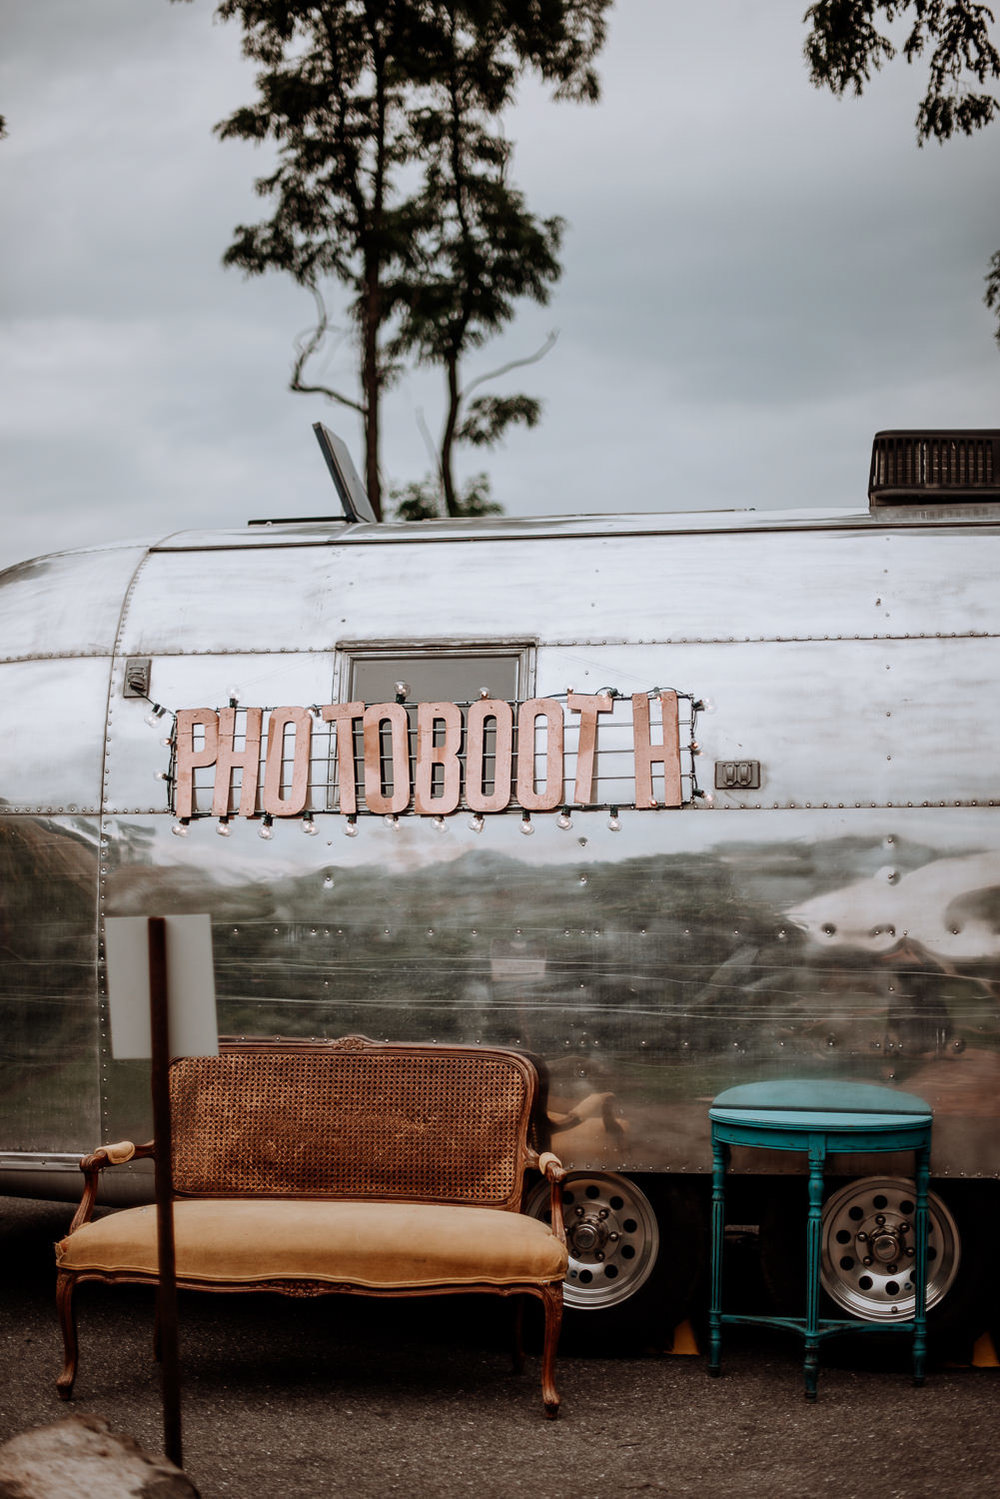 Airstream photo booth from Rose and Dale Photo Co.